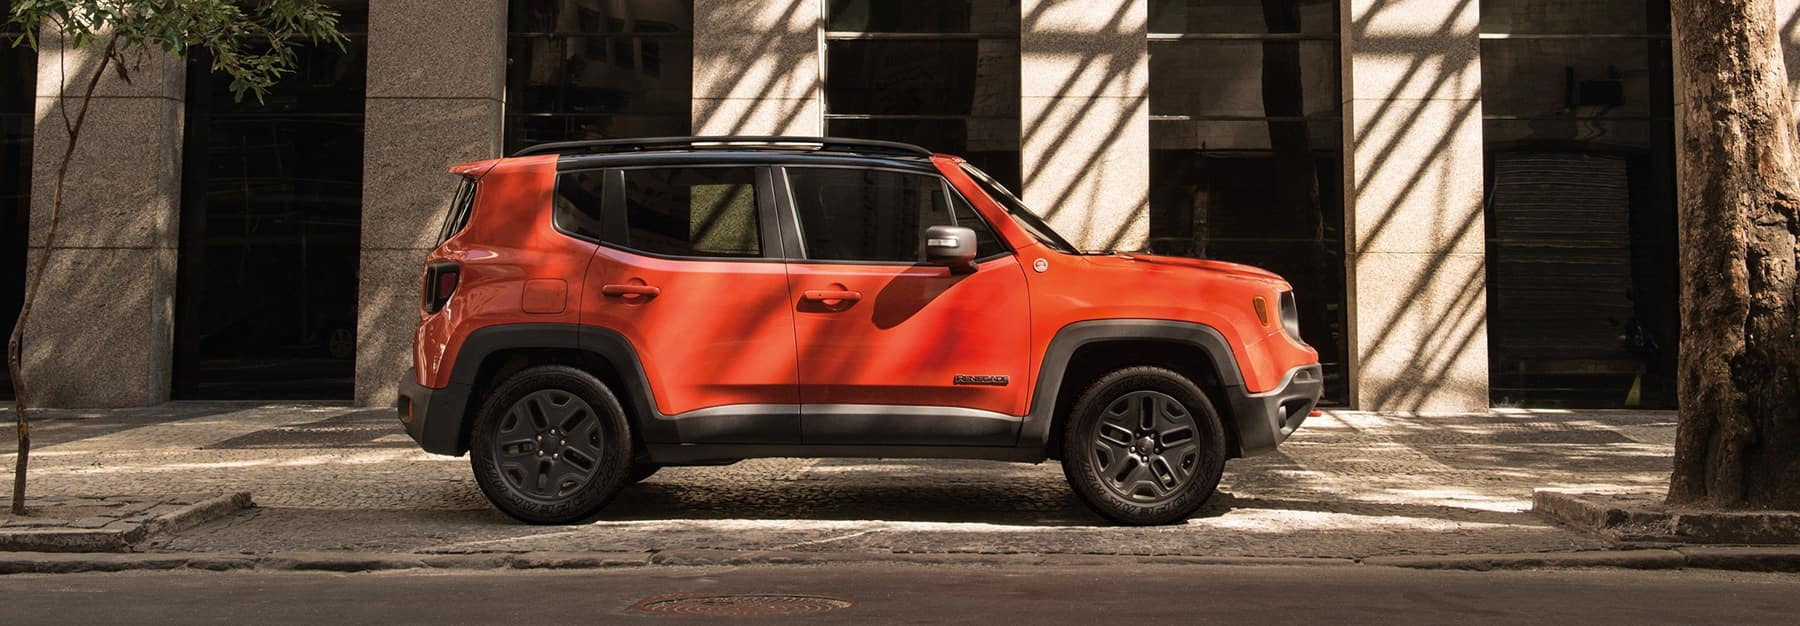 Research The 2018 Jeep Renegade Grapevine Cdjr Dallas Texas